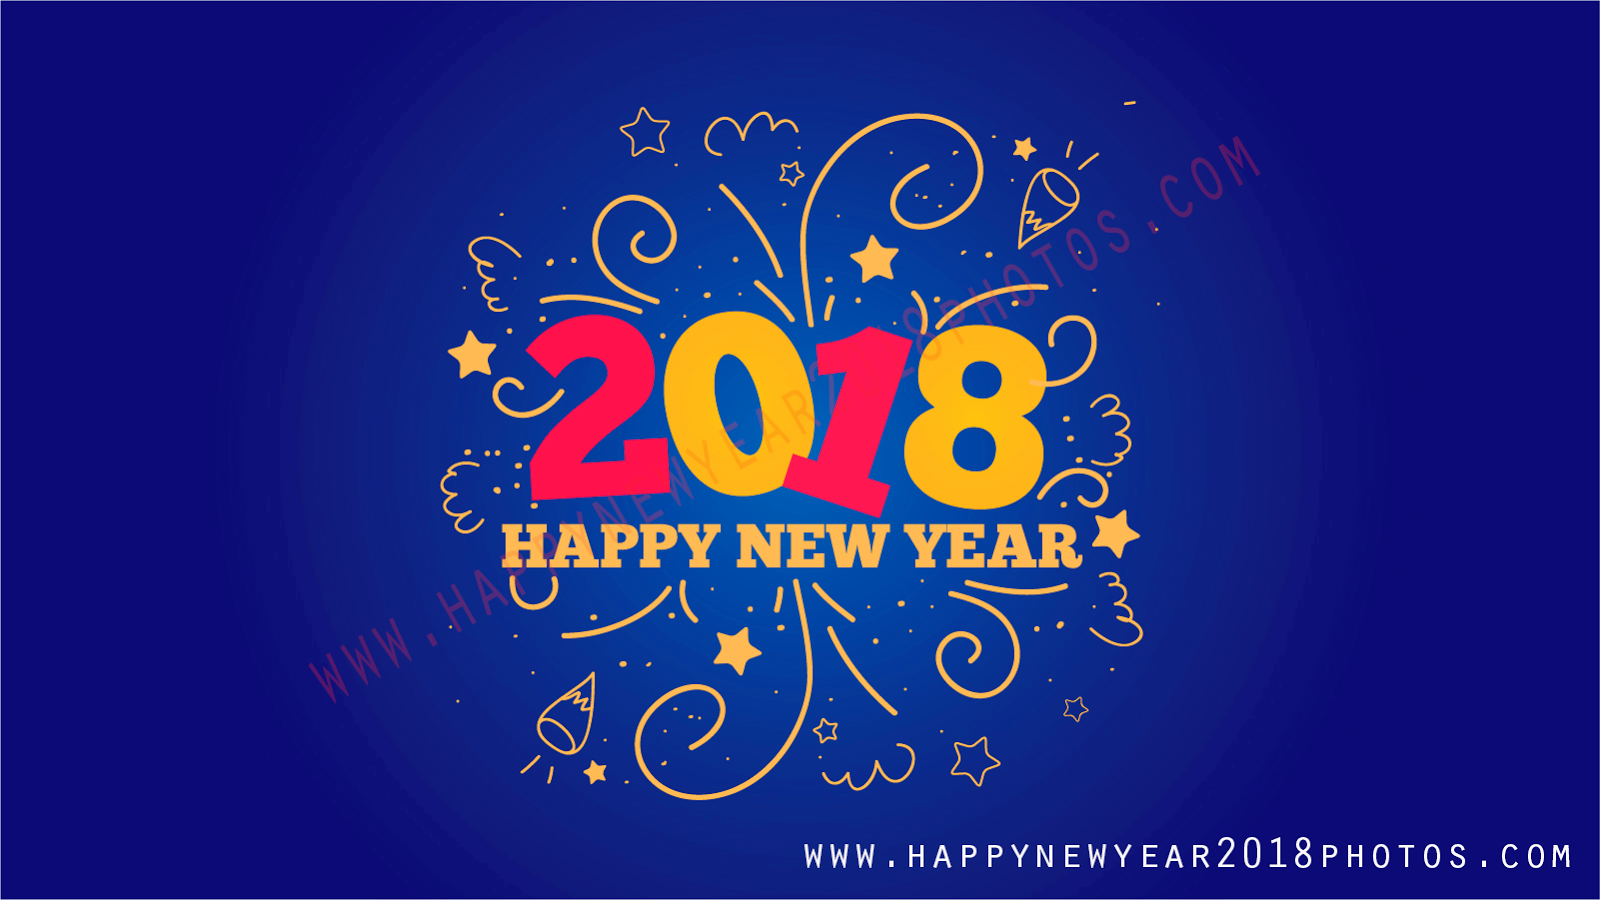 Happy-New-Year-2018-HD-Wallpapers.png